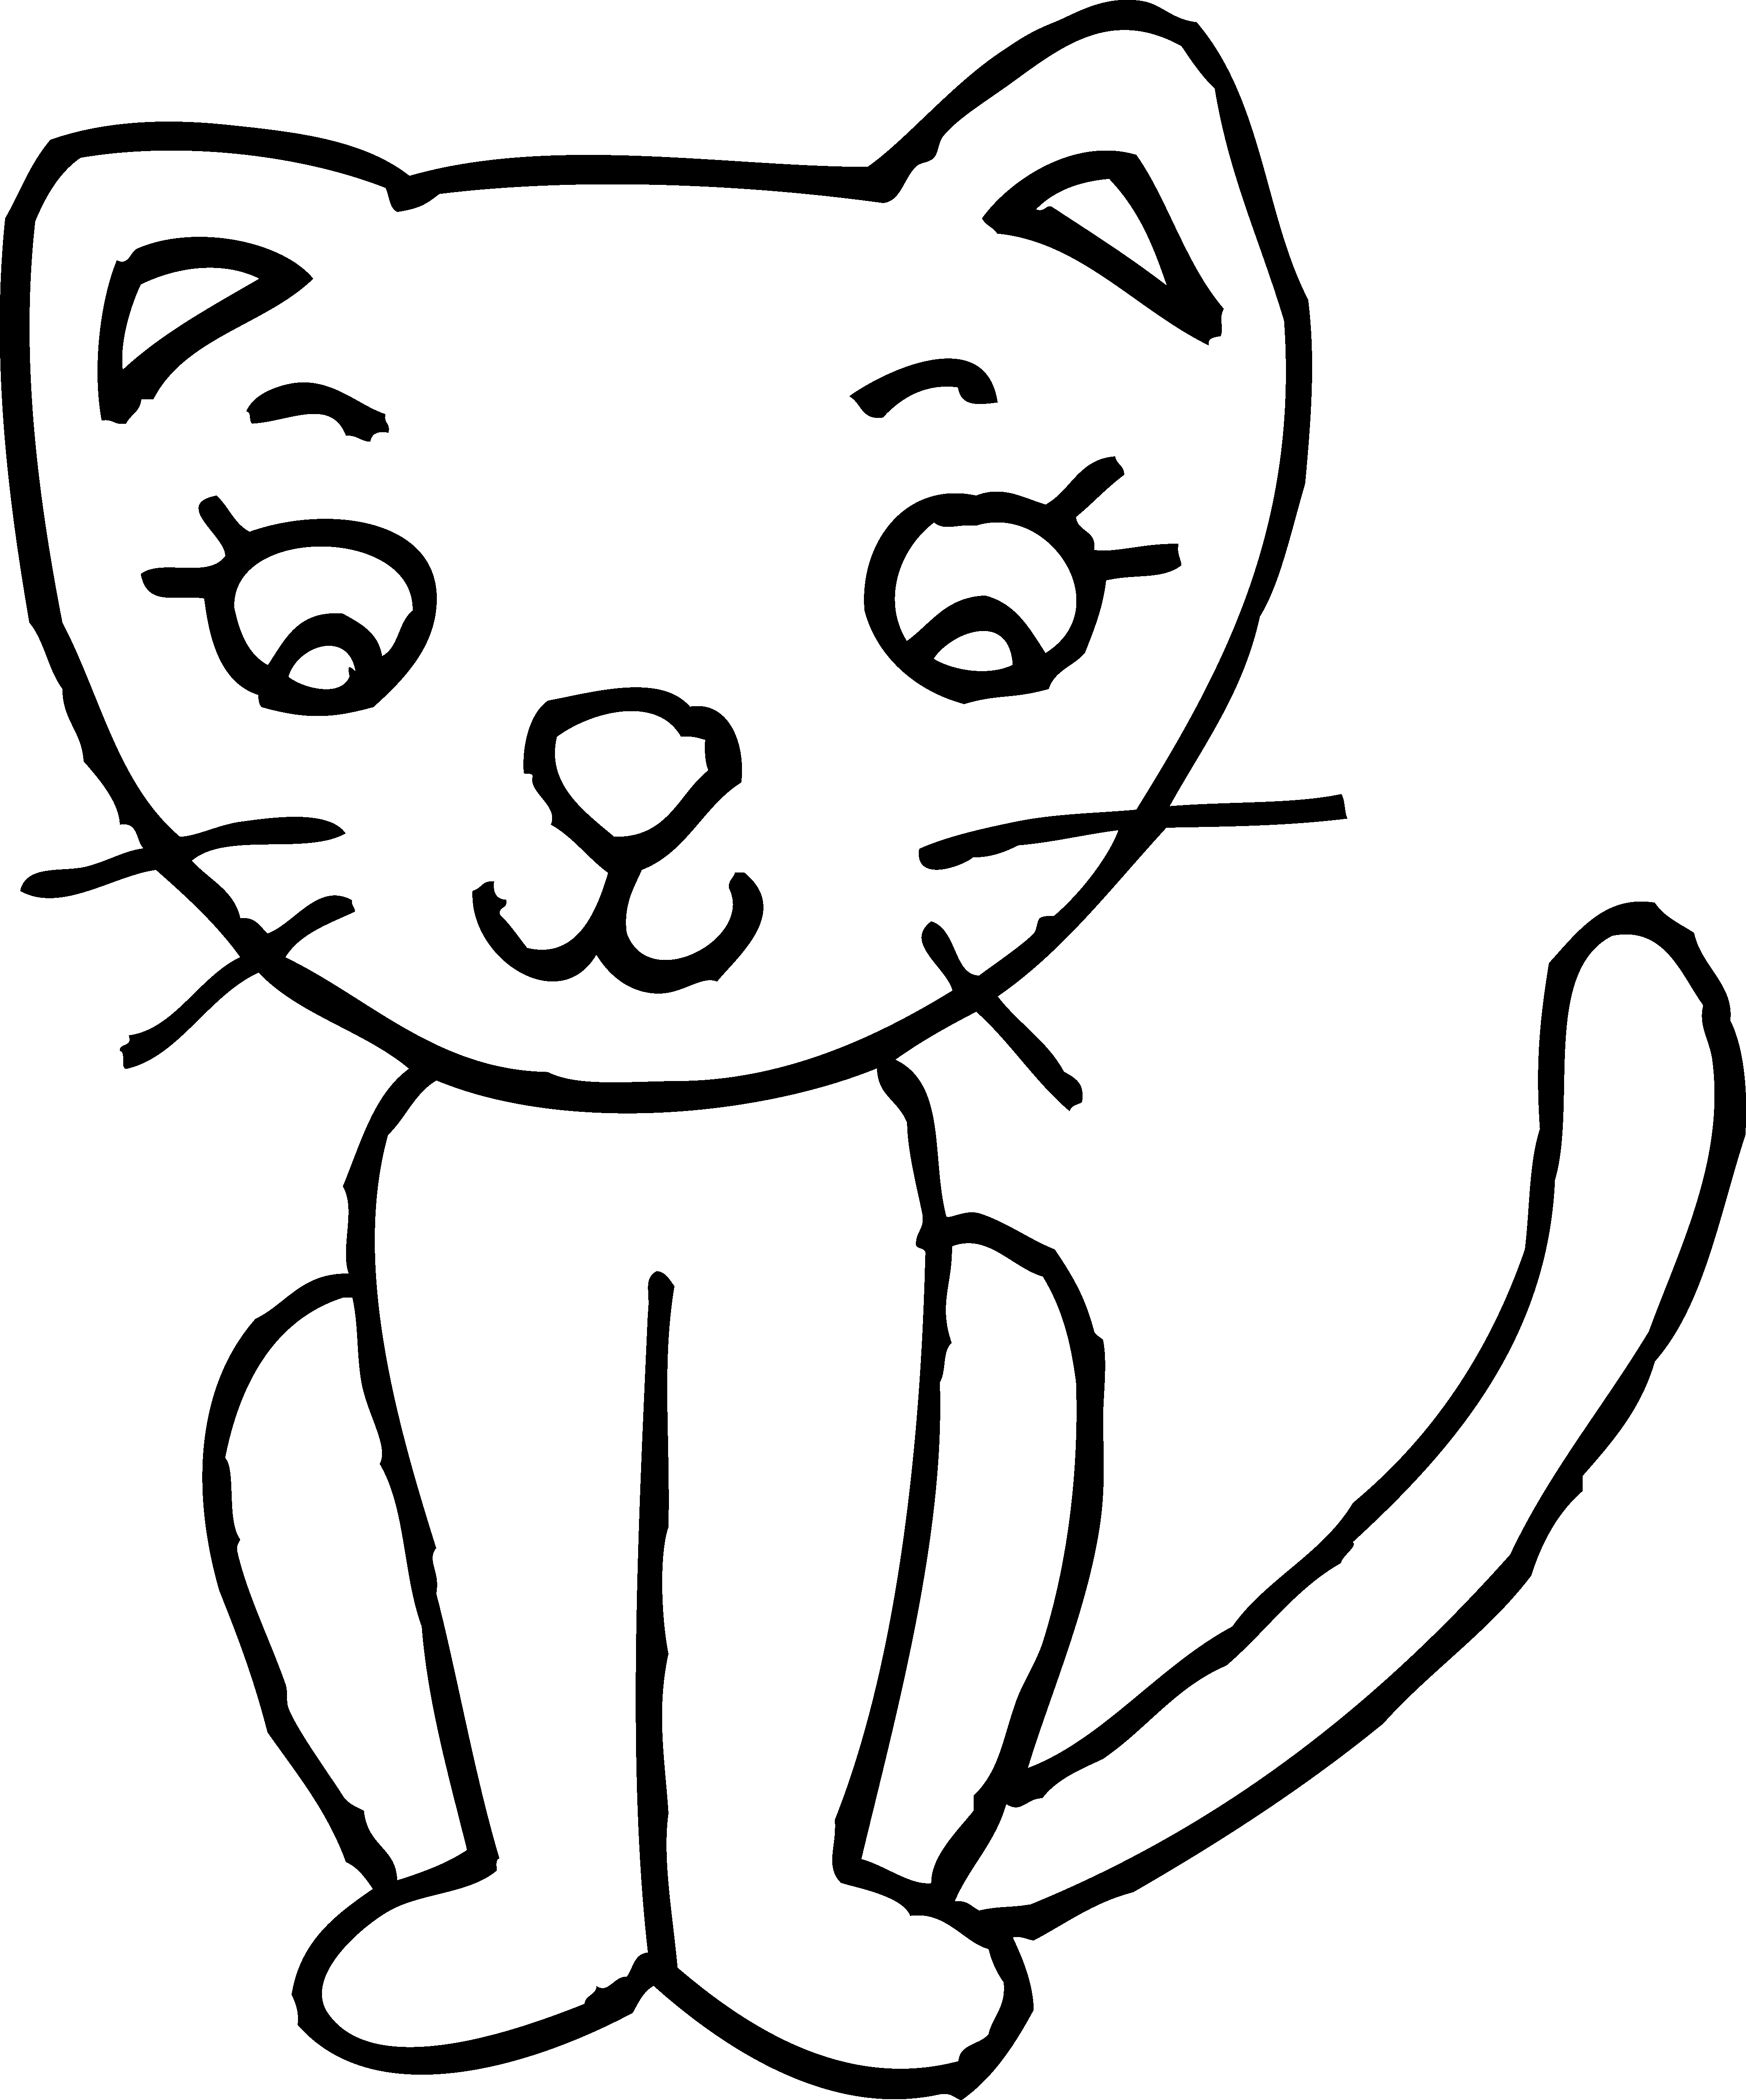 4137x4975 Cat Black And White Clipart Many Interesting Cliparts